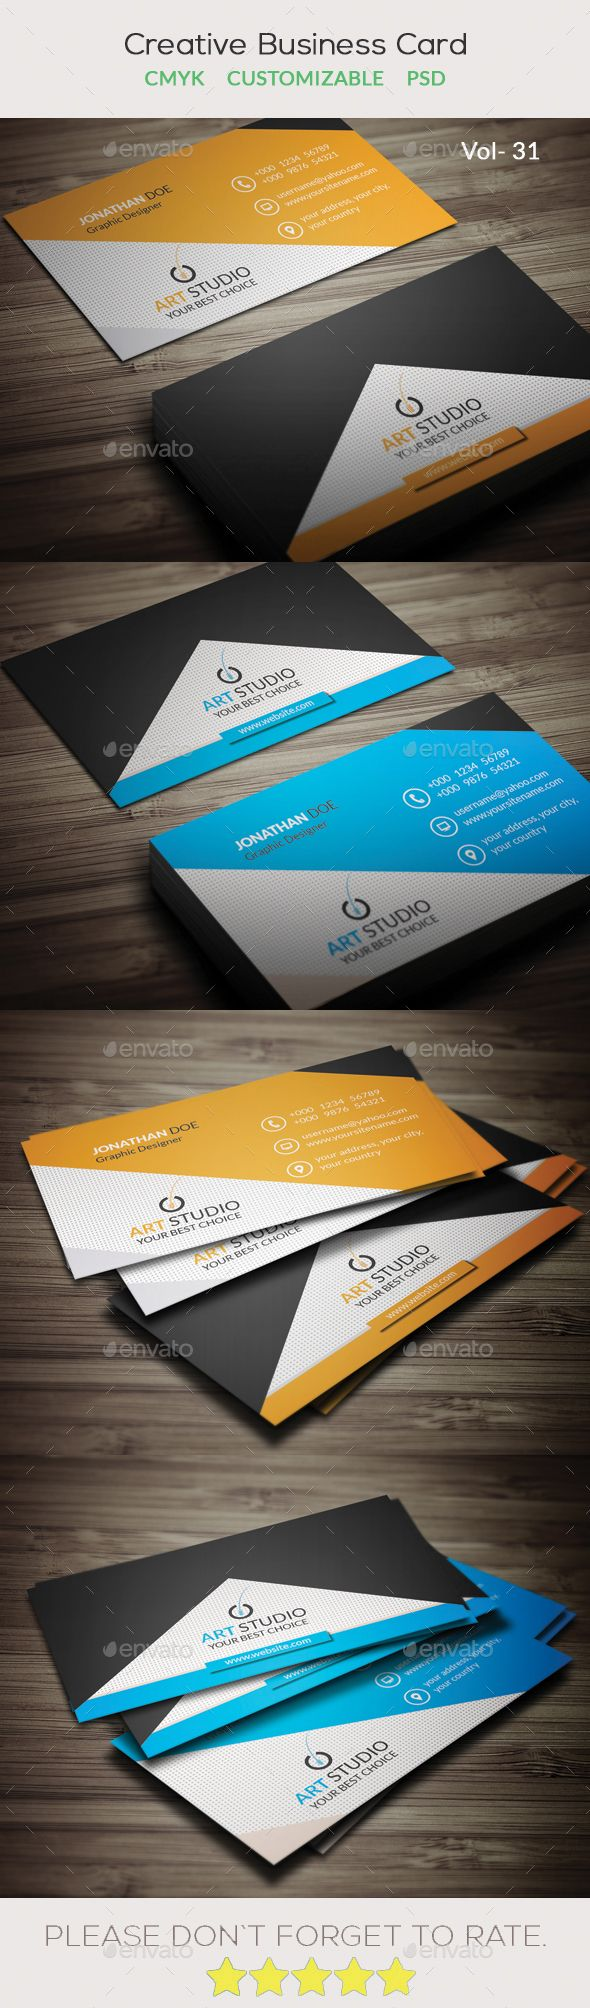 Creative Business Card V.31 | Business cards, Business and Creative